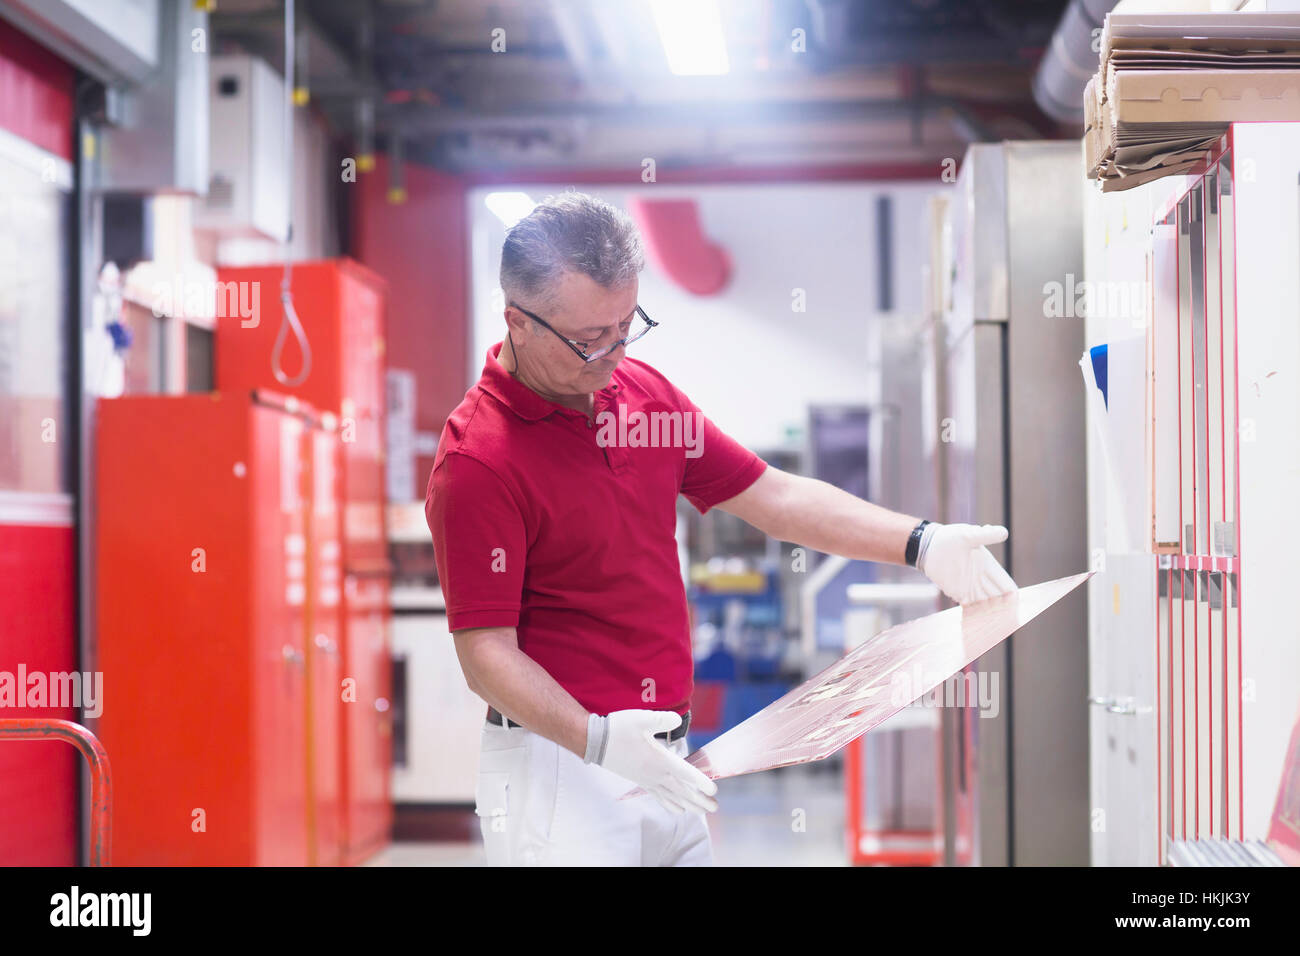 Male engineer examining circuit board in industry,Hanover,Lower Saxony,Germany - Stock Image